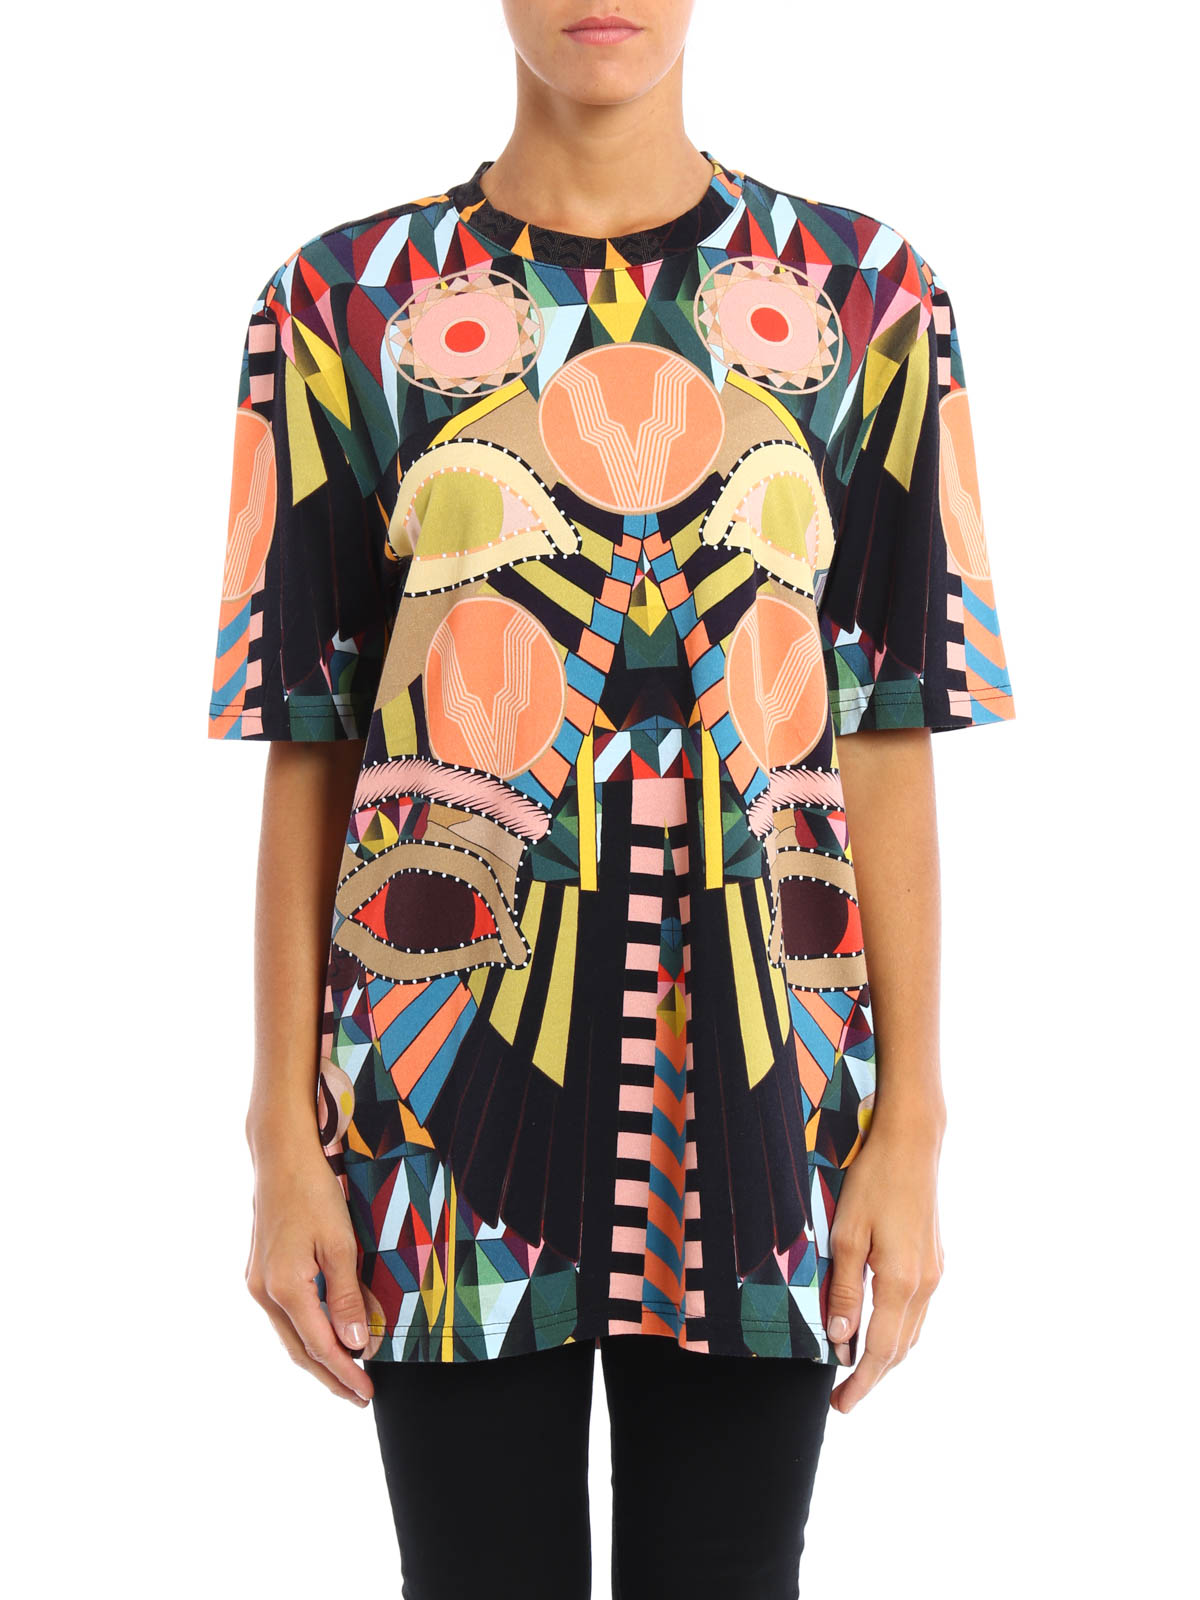 All Givenchy T Shirts